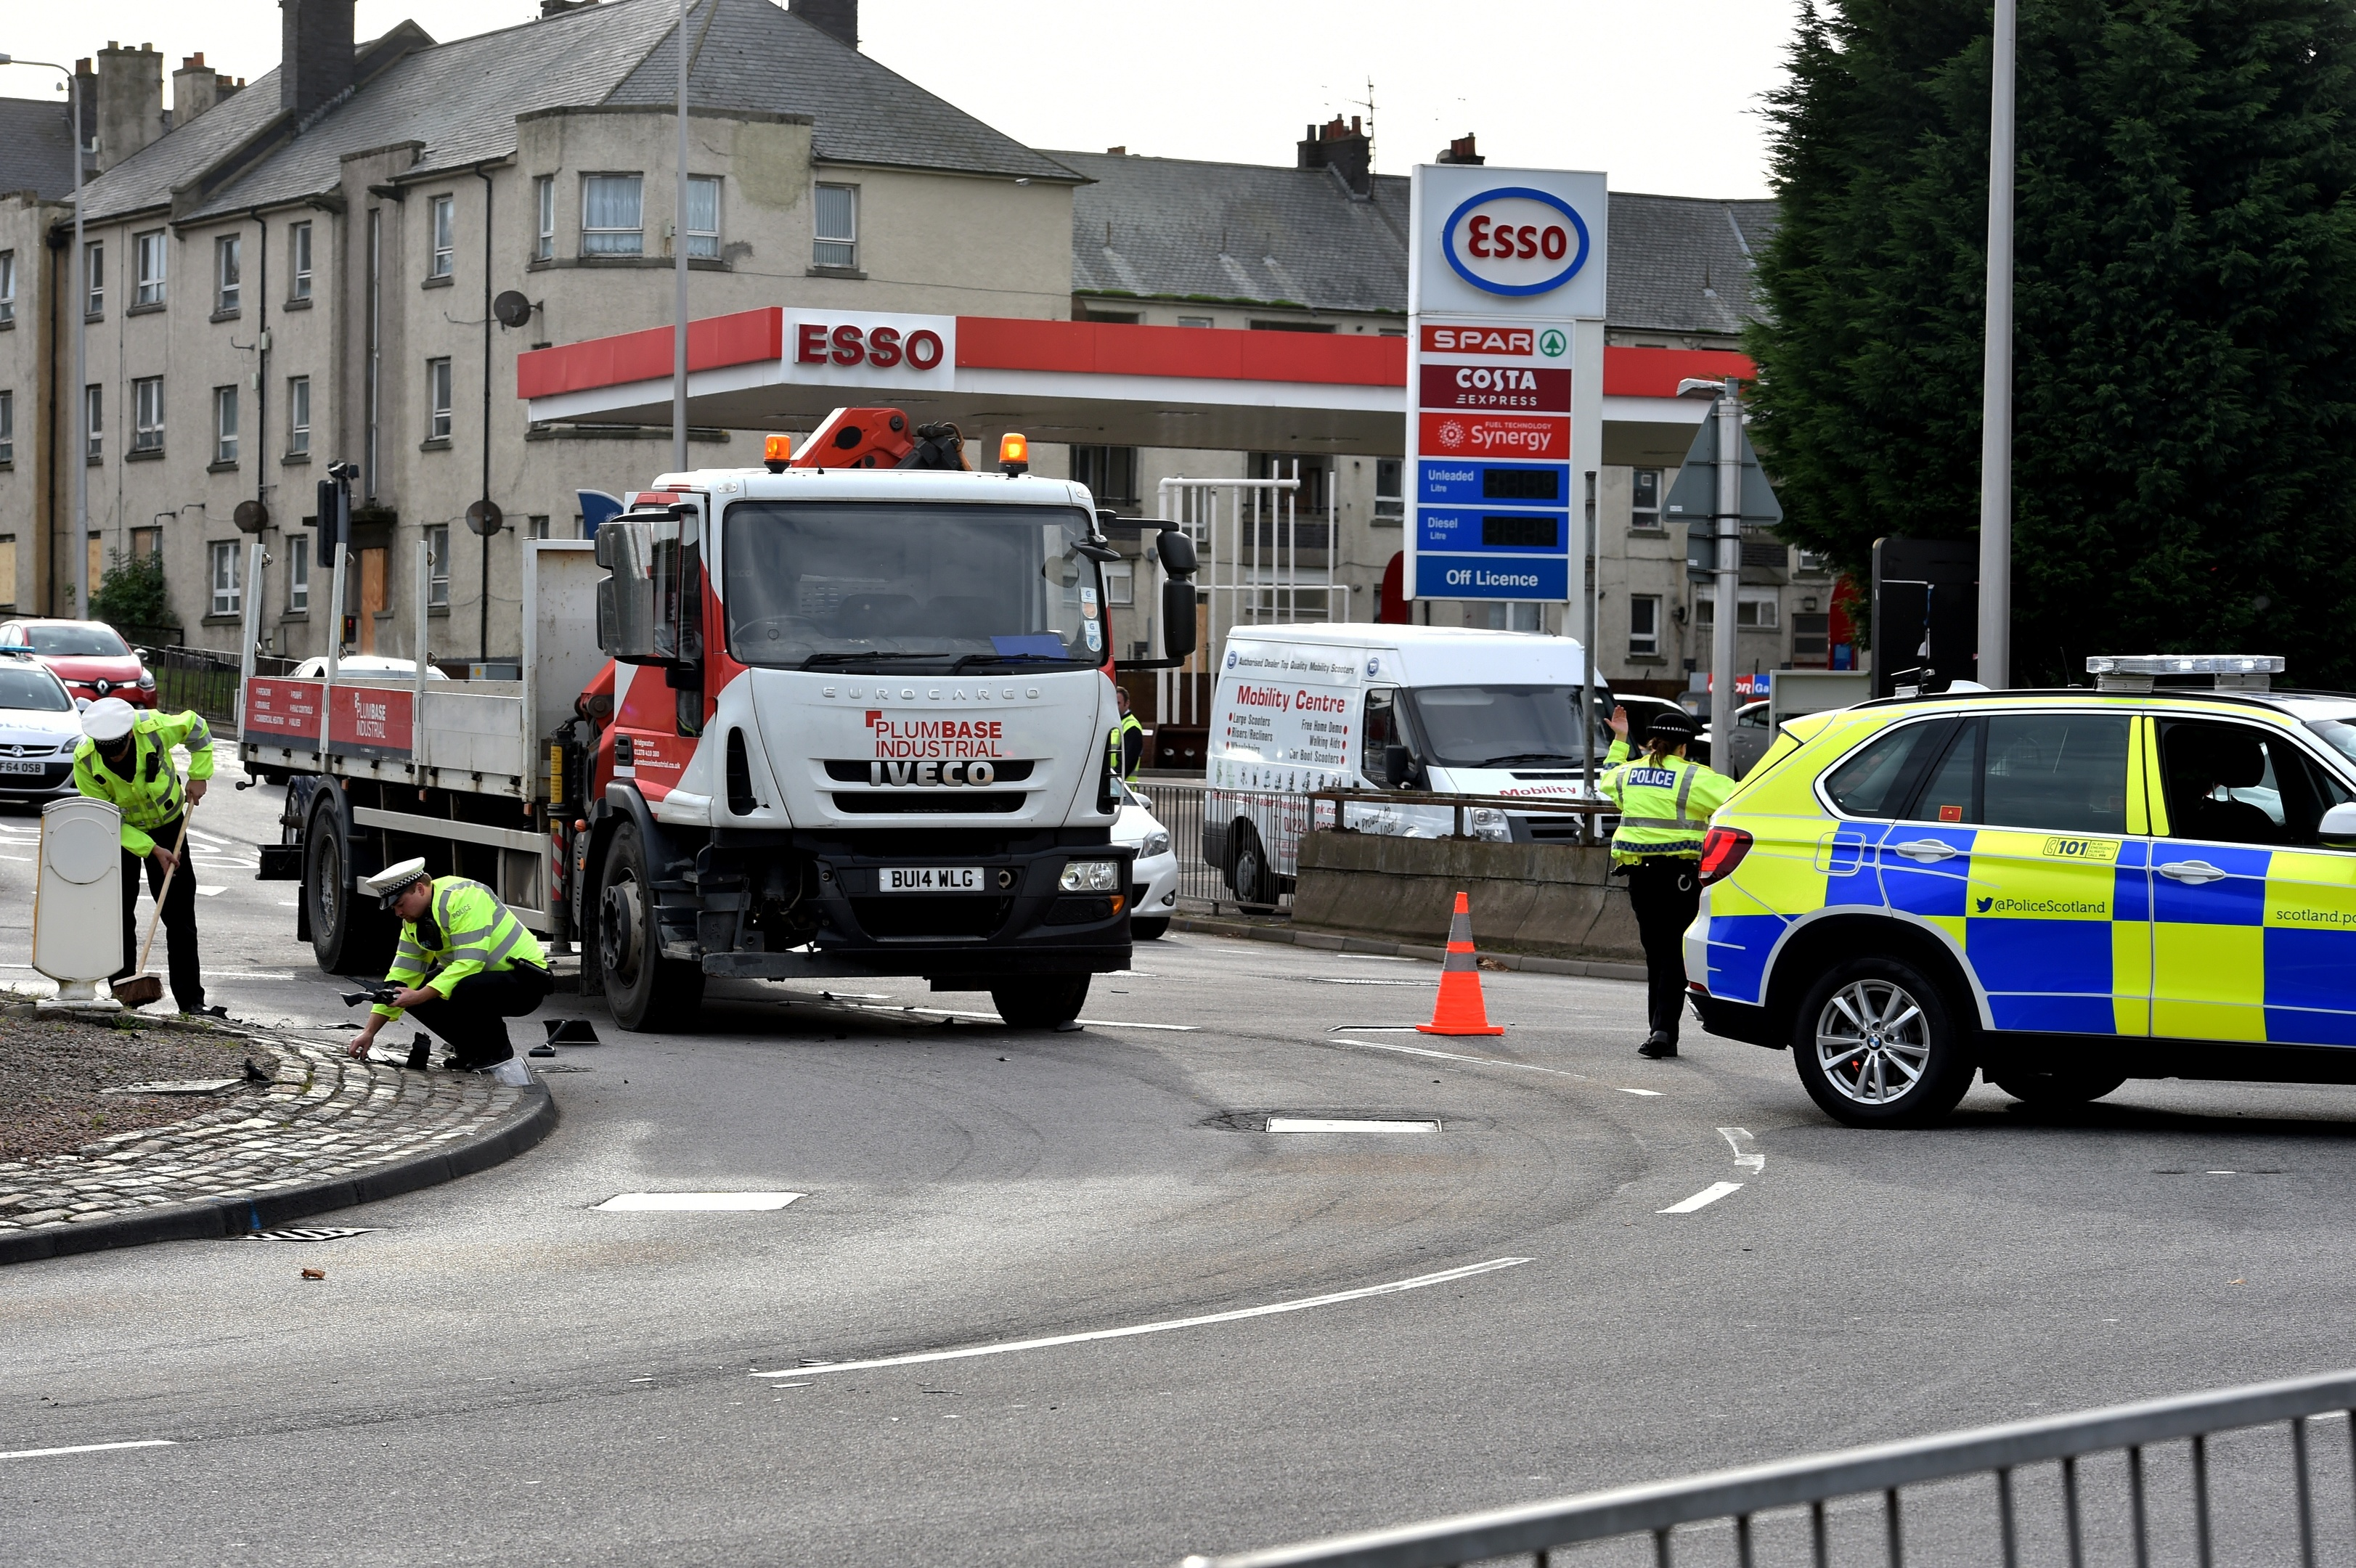 Police at the scene on the Haudagain roundabout